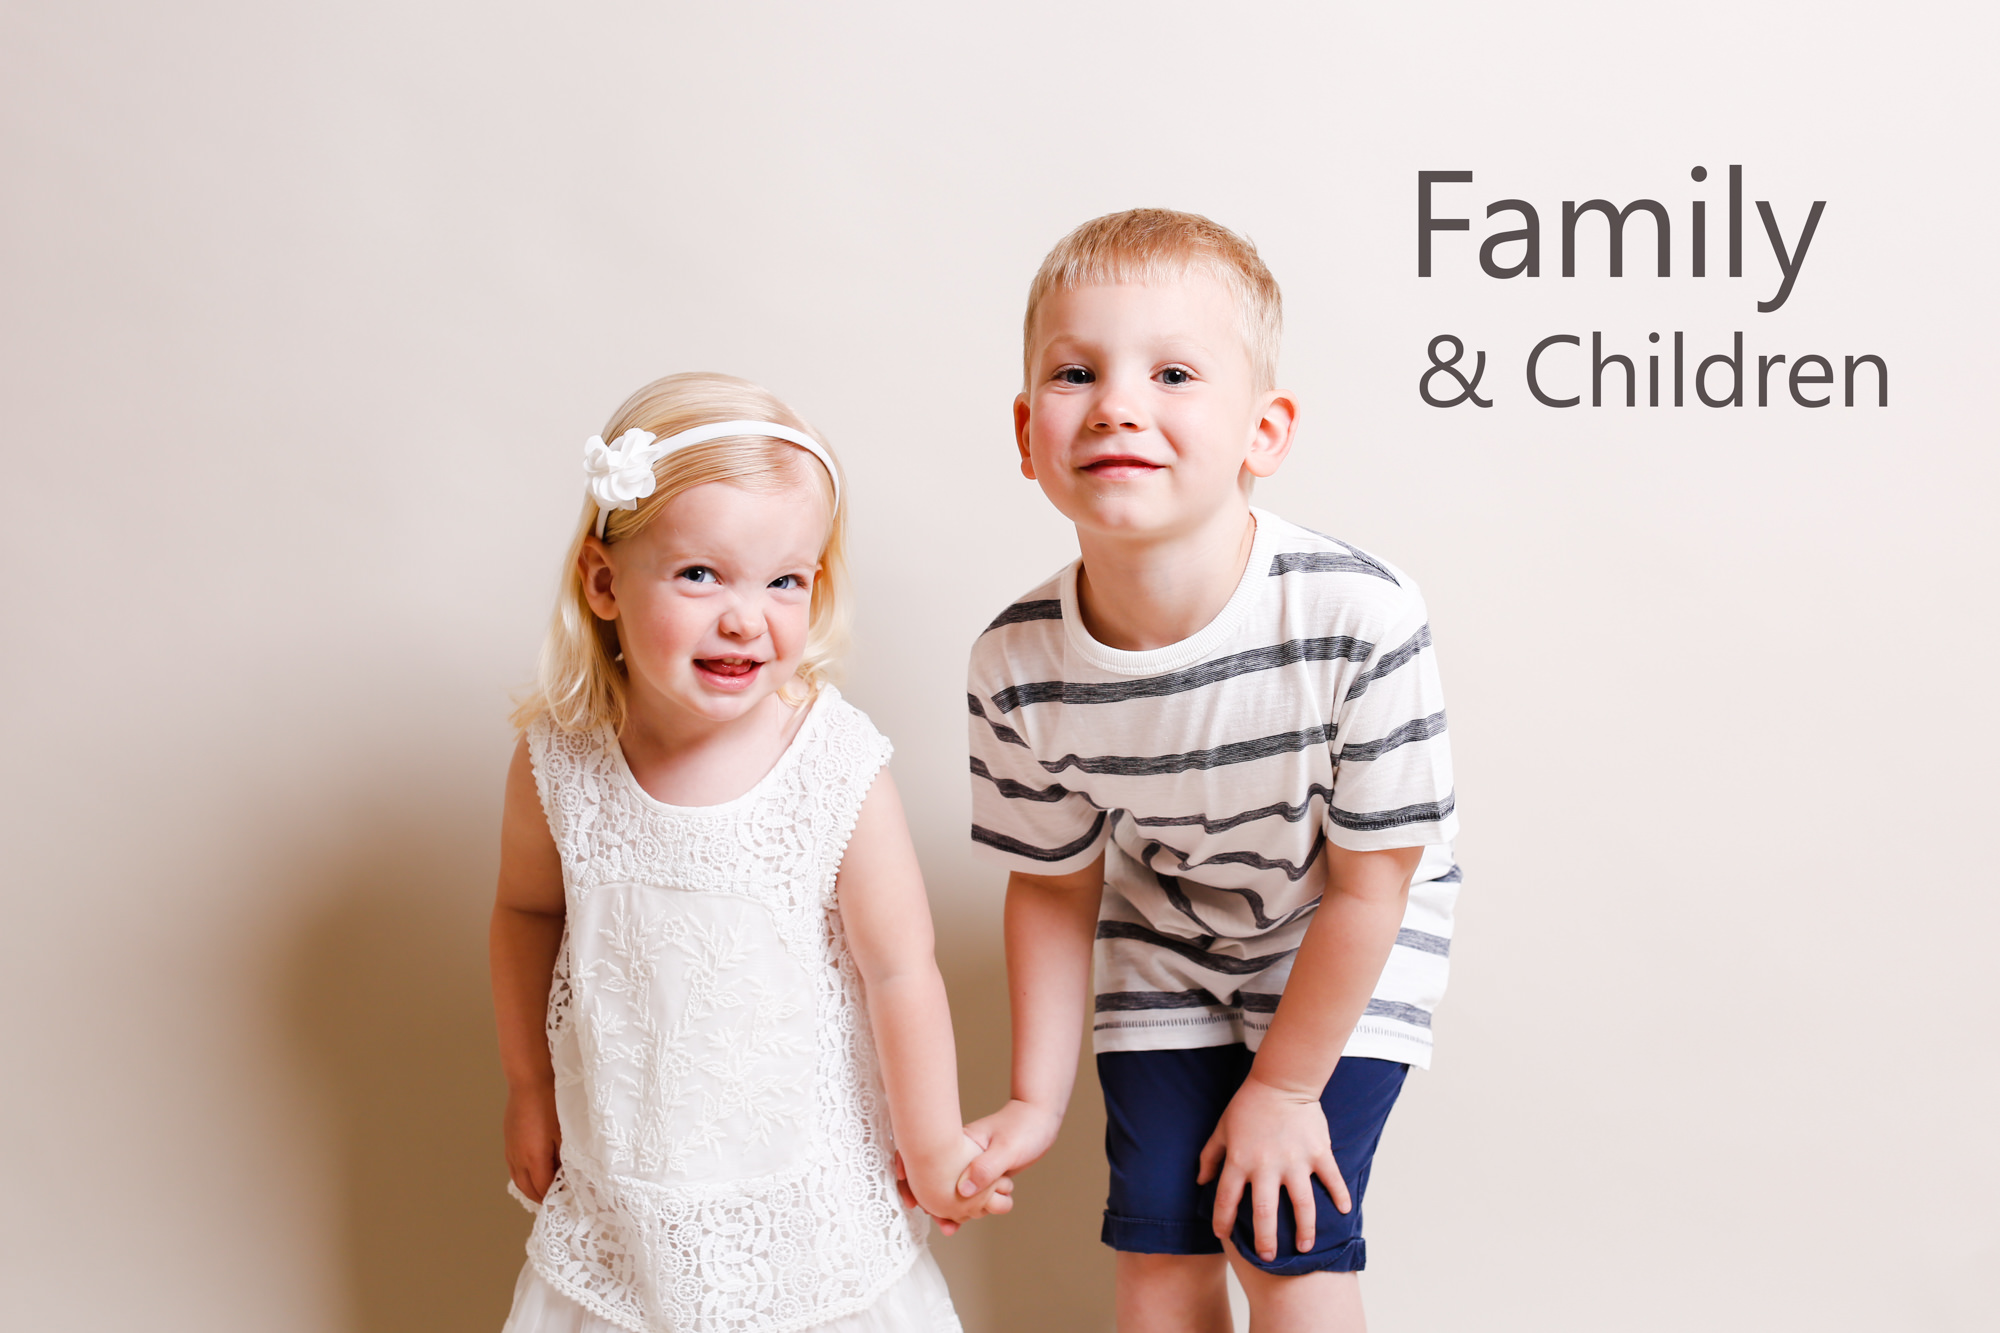 Family and Children Photography based in Crouch End, North London, N8